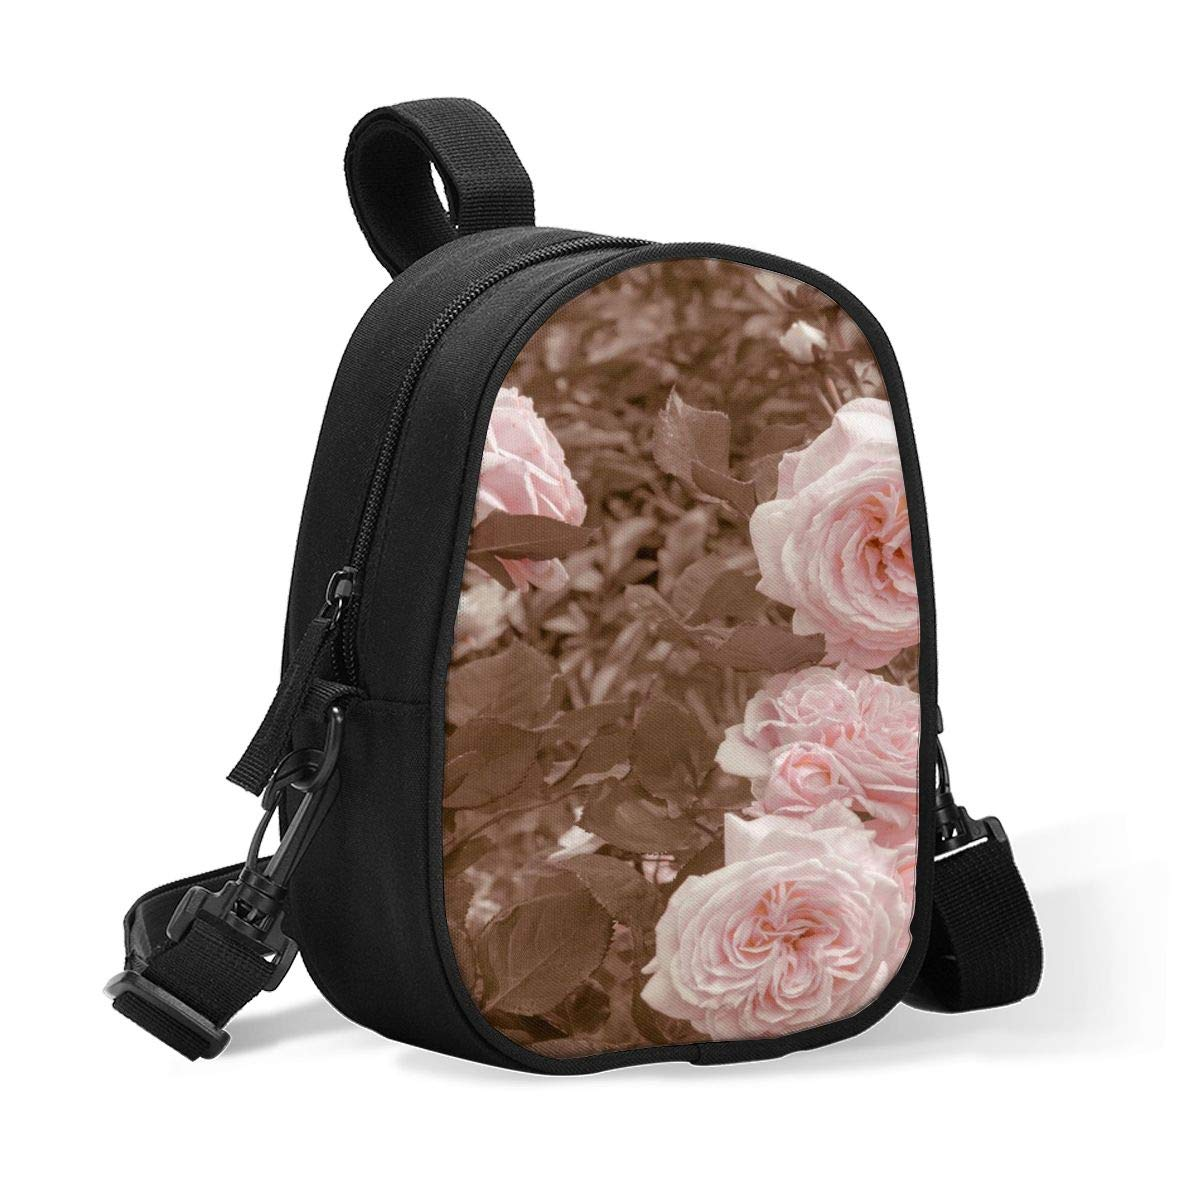 Insulated Baby Bottle Tote Bags for Travel Double Baby Bottle Warmer Or Cool Vintage English Roses Breastmilk Baby Bottle Cooler & Travel Bag, Easily Attaches to Stroller Or Diaper Bag